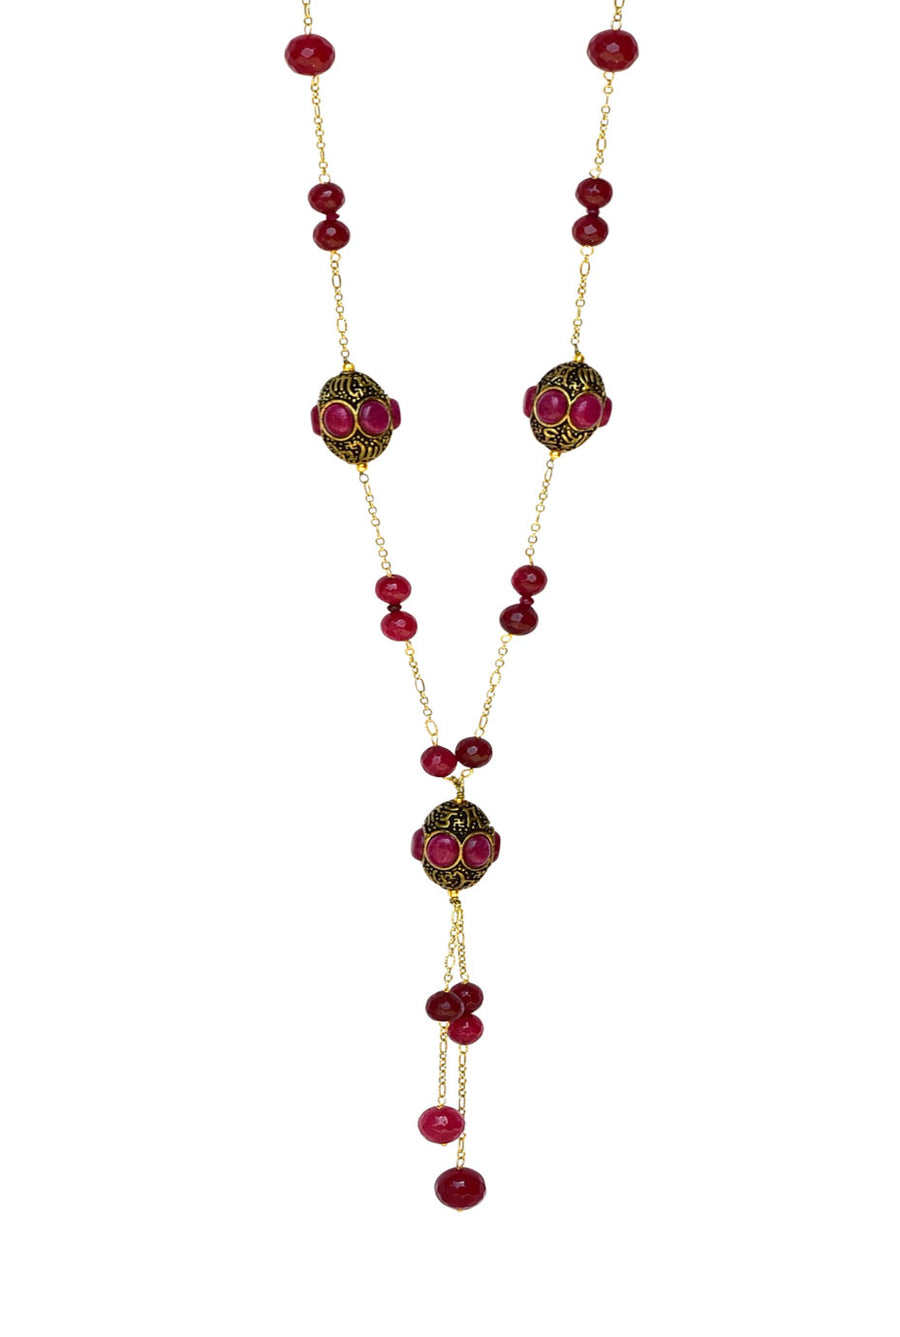 Handcrafted Barrel Bead Tassel Necklace Red Finish